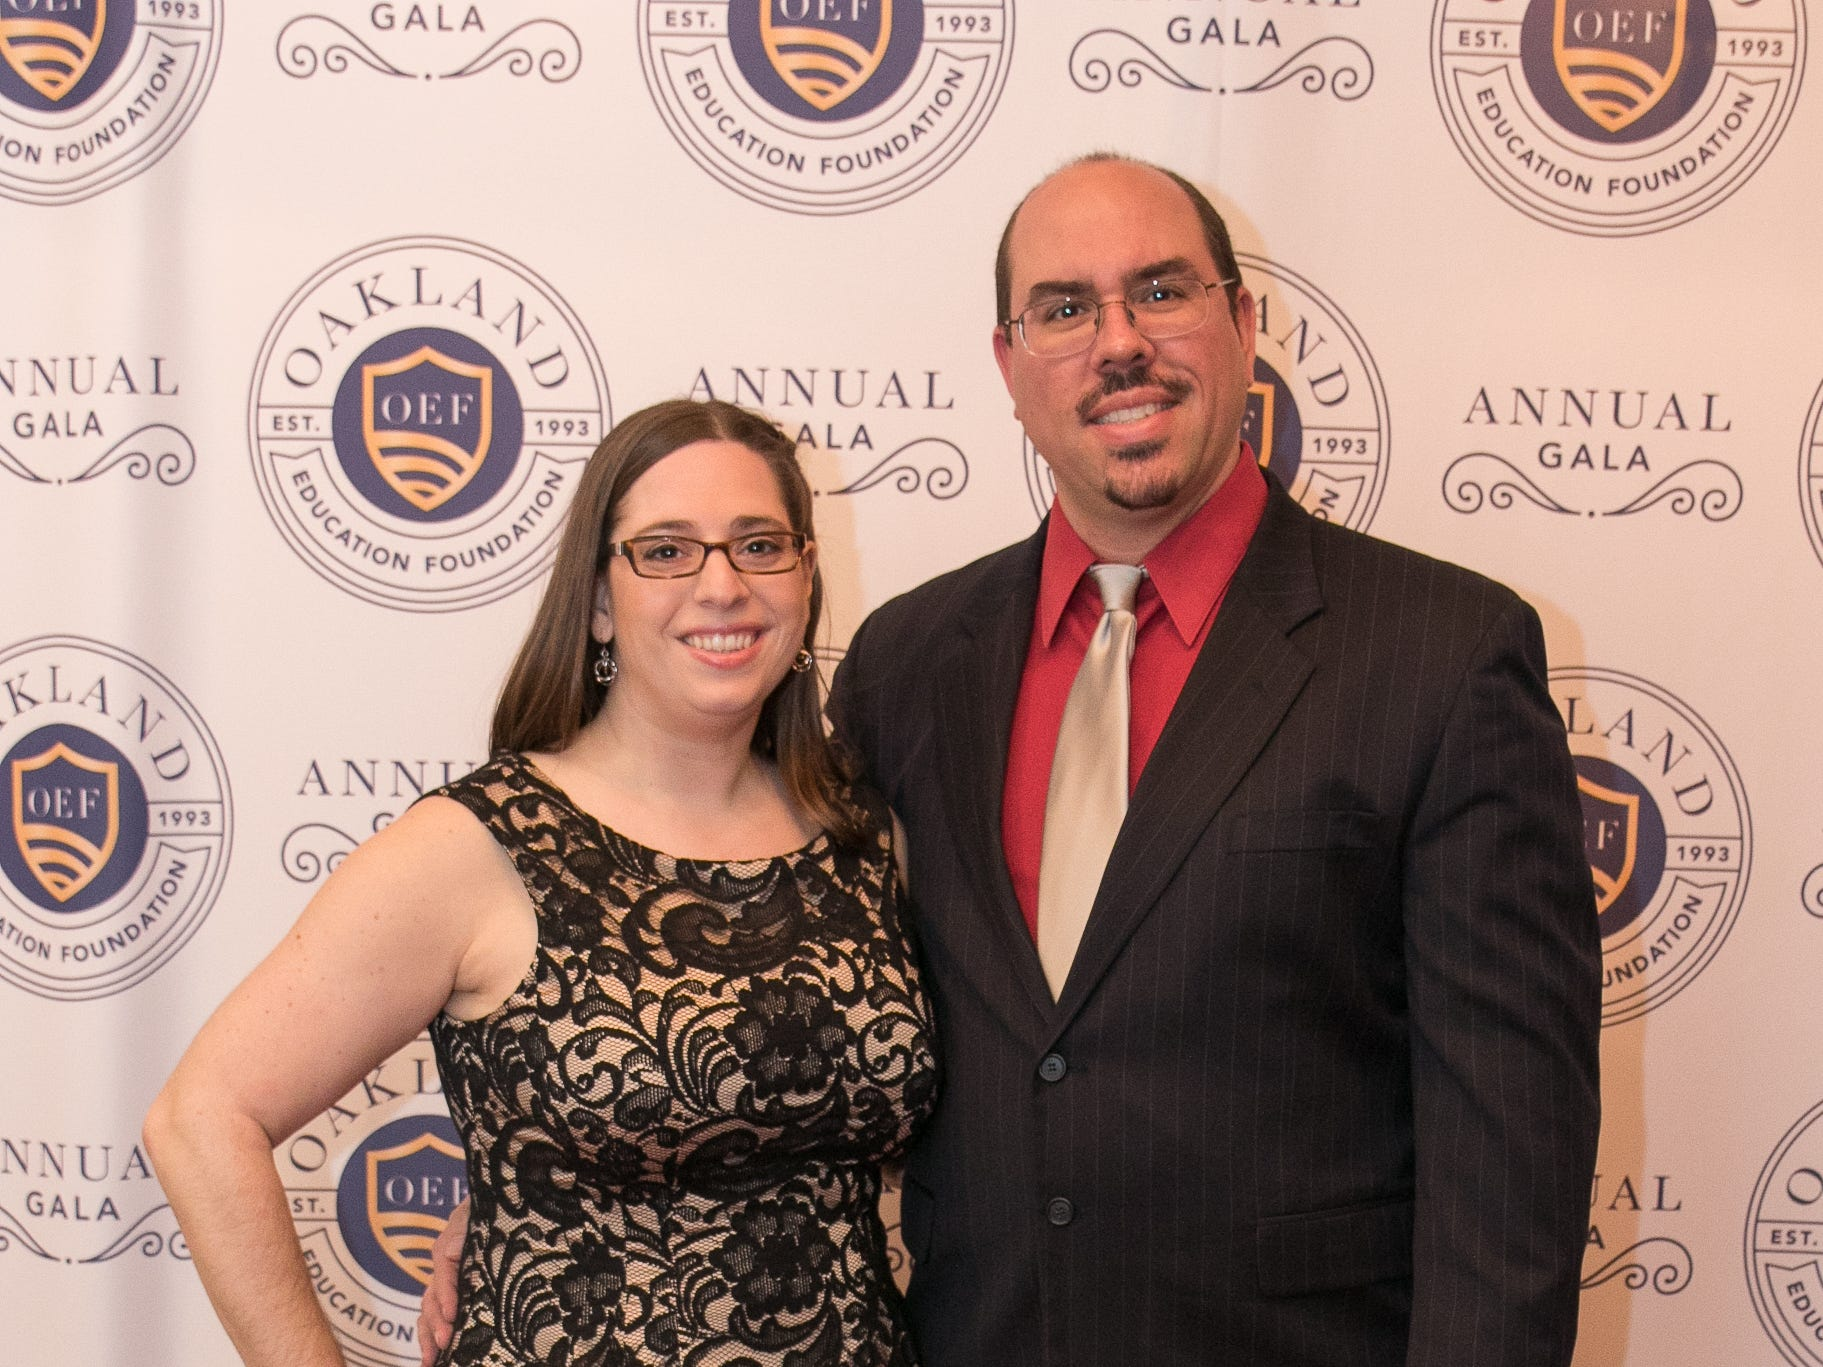 Beth and Brian LaForgia. The Oakland Education Foundation held their 25th Anniversary Casino Night Gala at Preakness Hills Country Club in Wayne. 03/16/2019